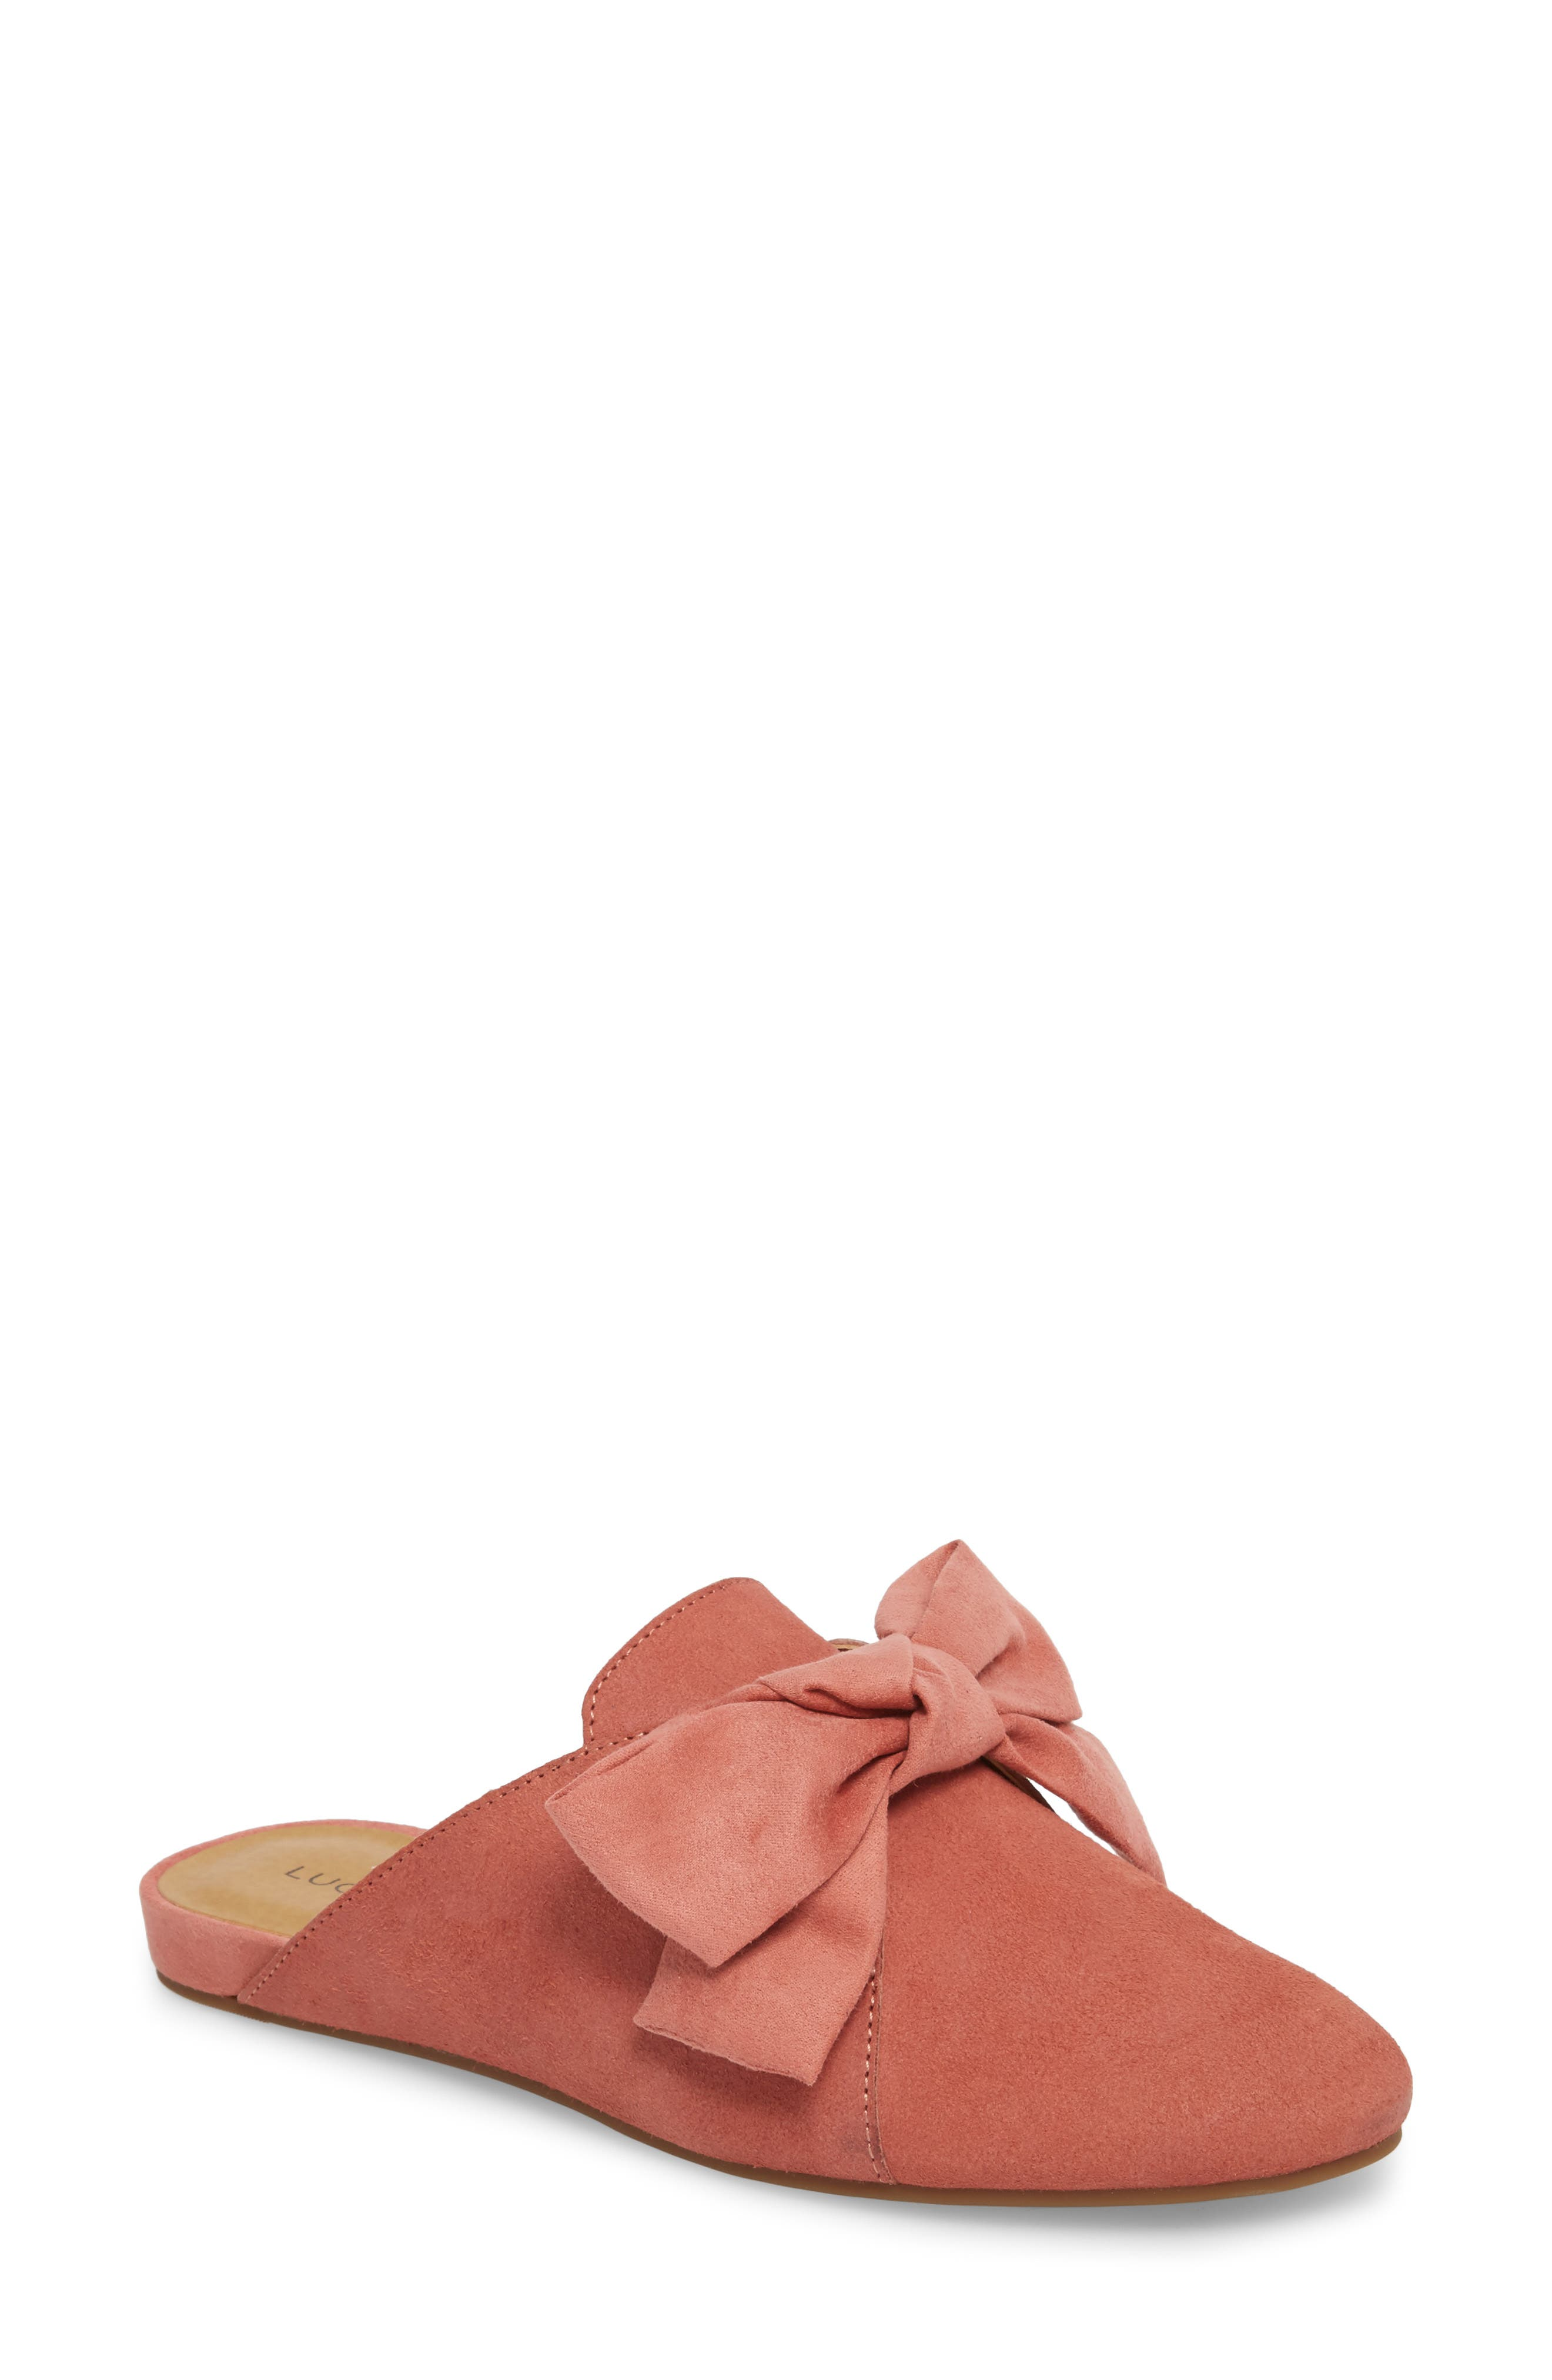 Florean Bow Loafer Mule,                         Main,                         color, Canyon Rose Leather